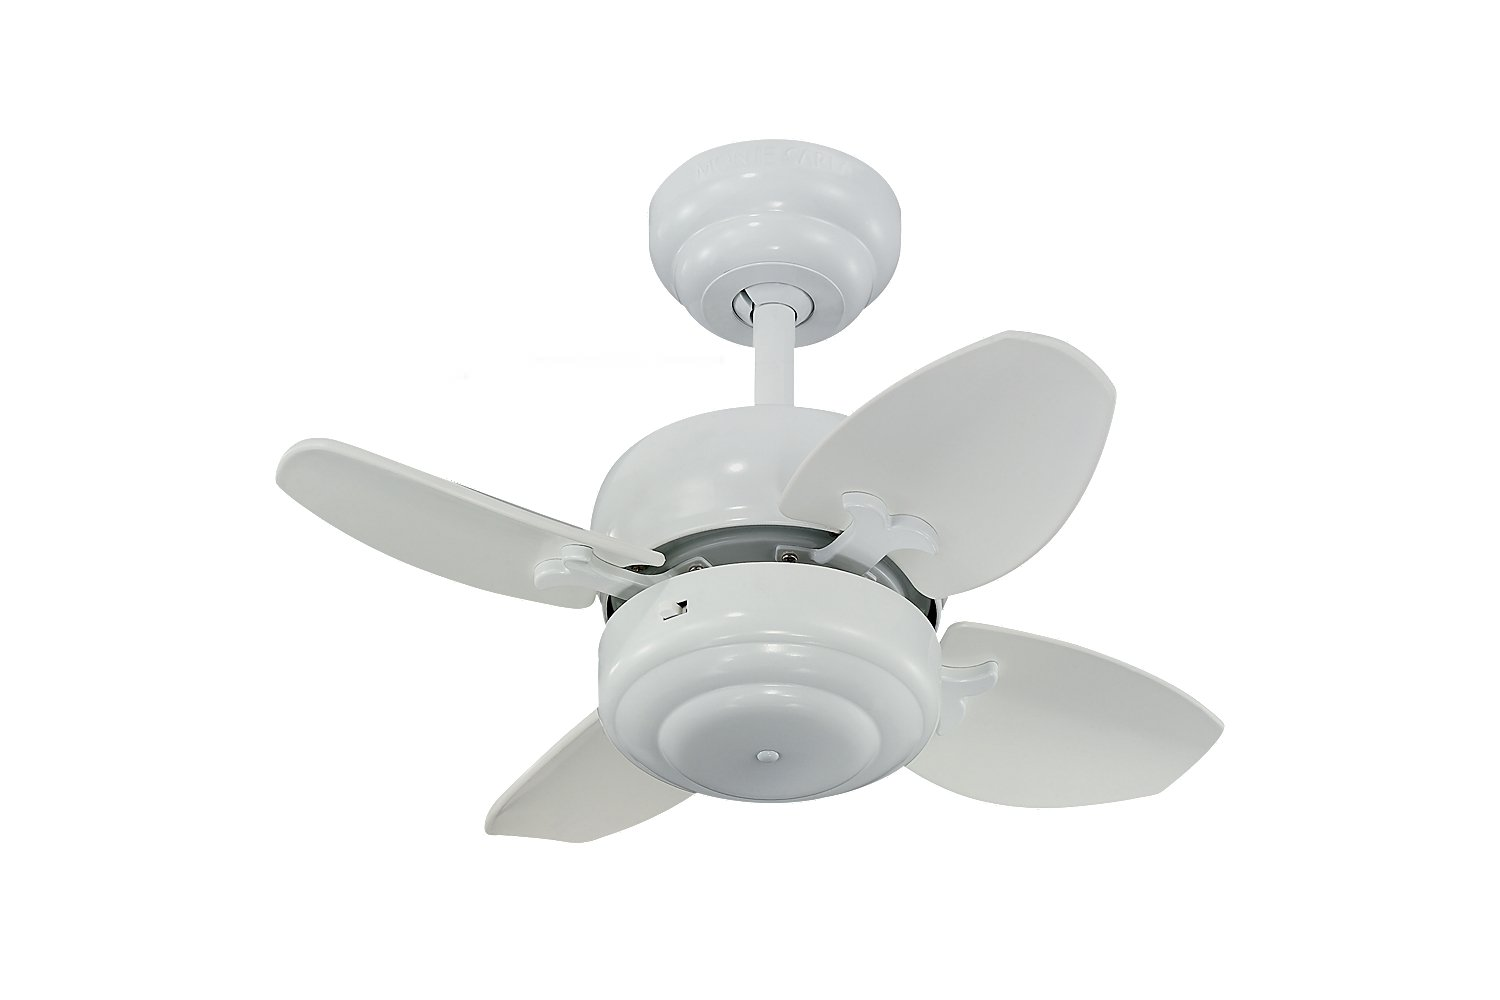 depot lighting how are canada the bronze en inch ceiling fans and indoor home new holden much fan accessories categories p